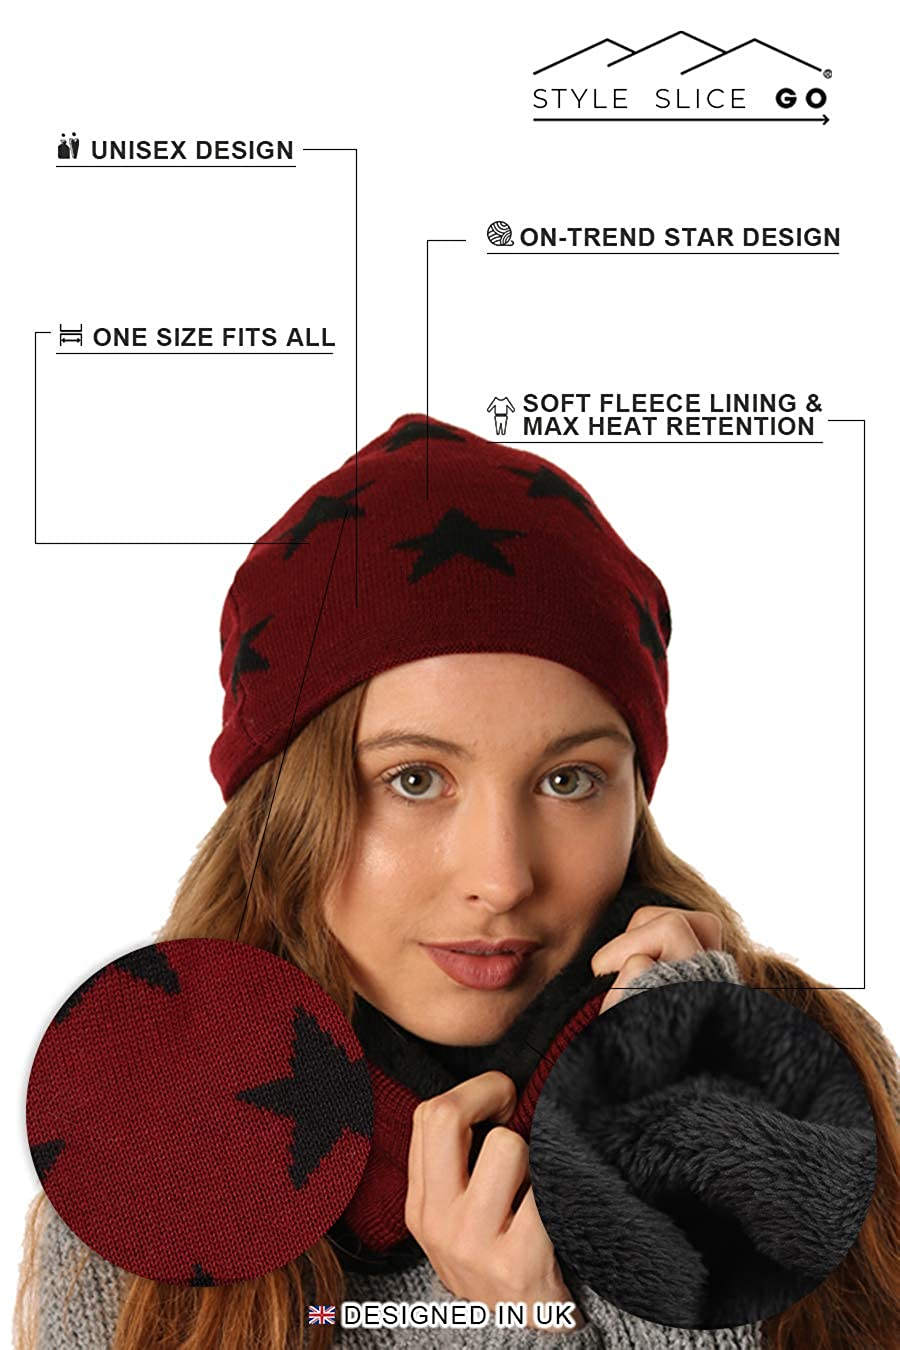 d840503563a STYLE SLICE Winter Hats Fleece Lined Hat and Scarf Sets for Women Men  Unisex Star Print